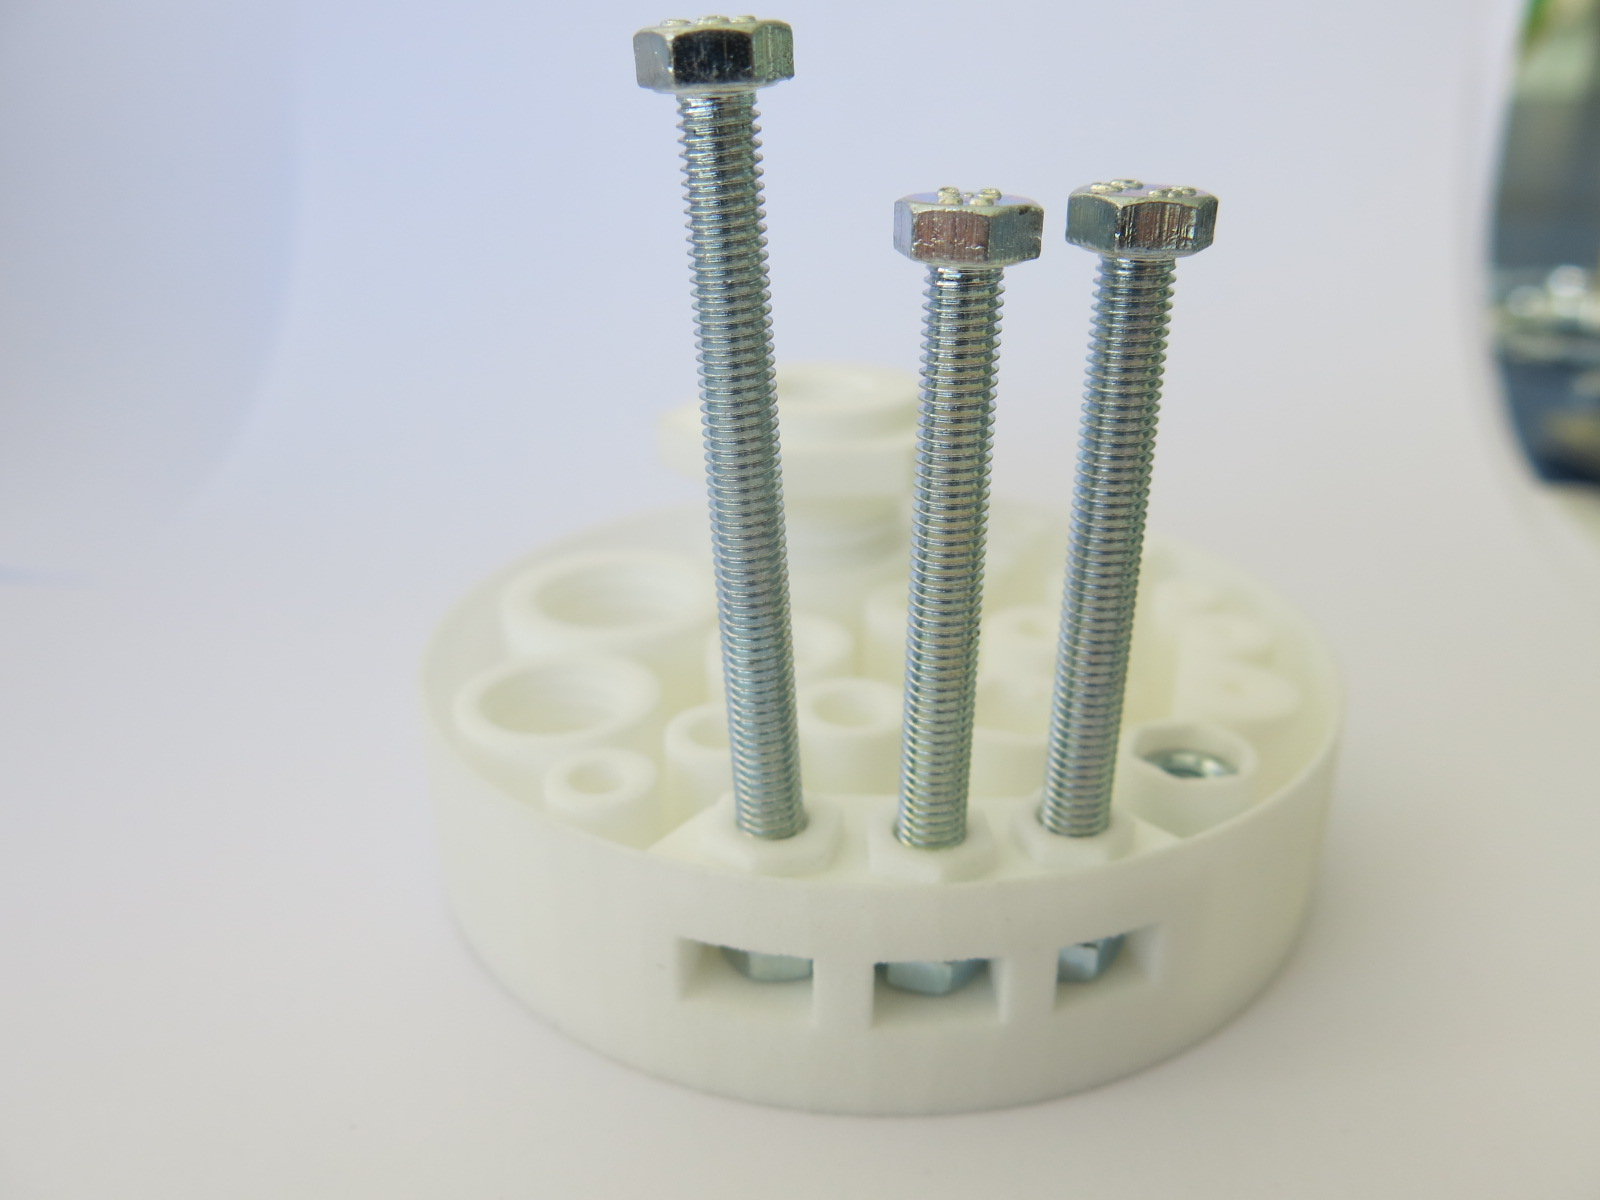 3D printed screws and threads